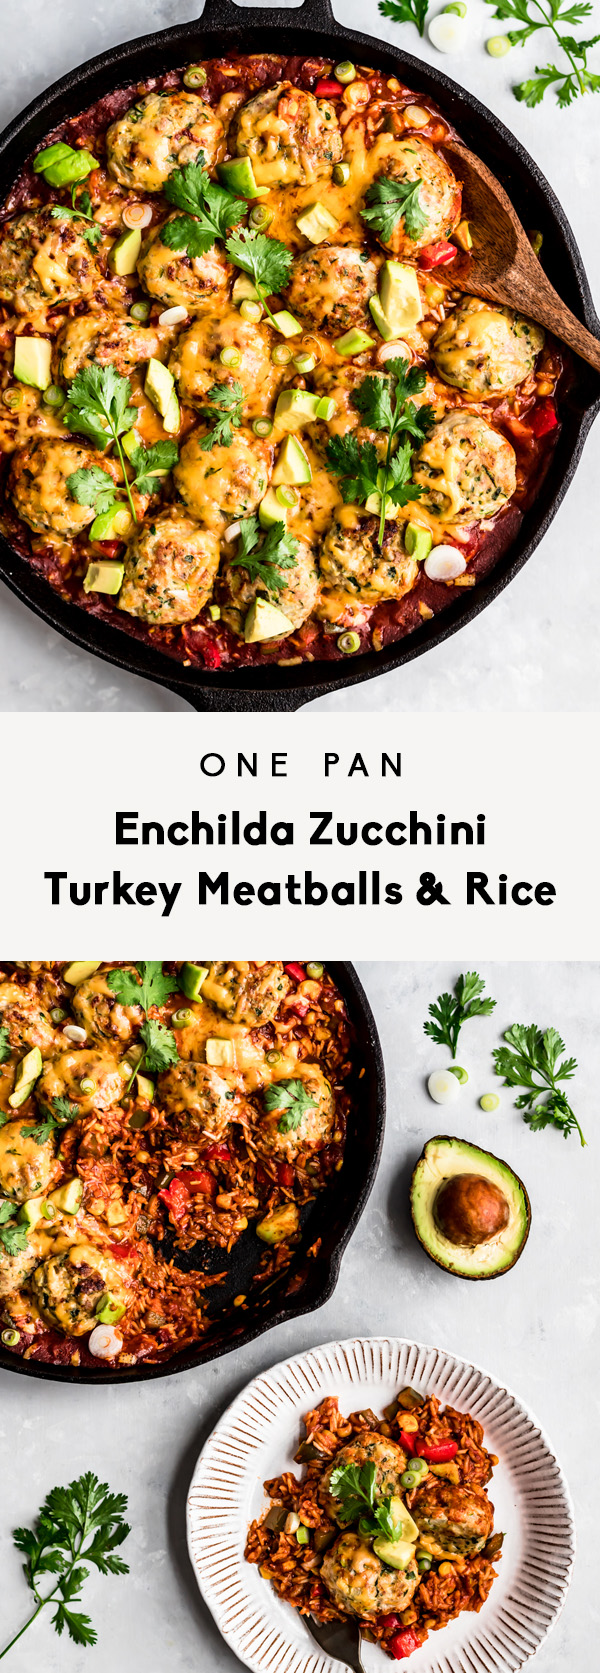 enchilada zucchini turkey meatballs and rice collage